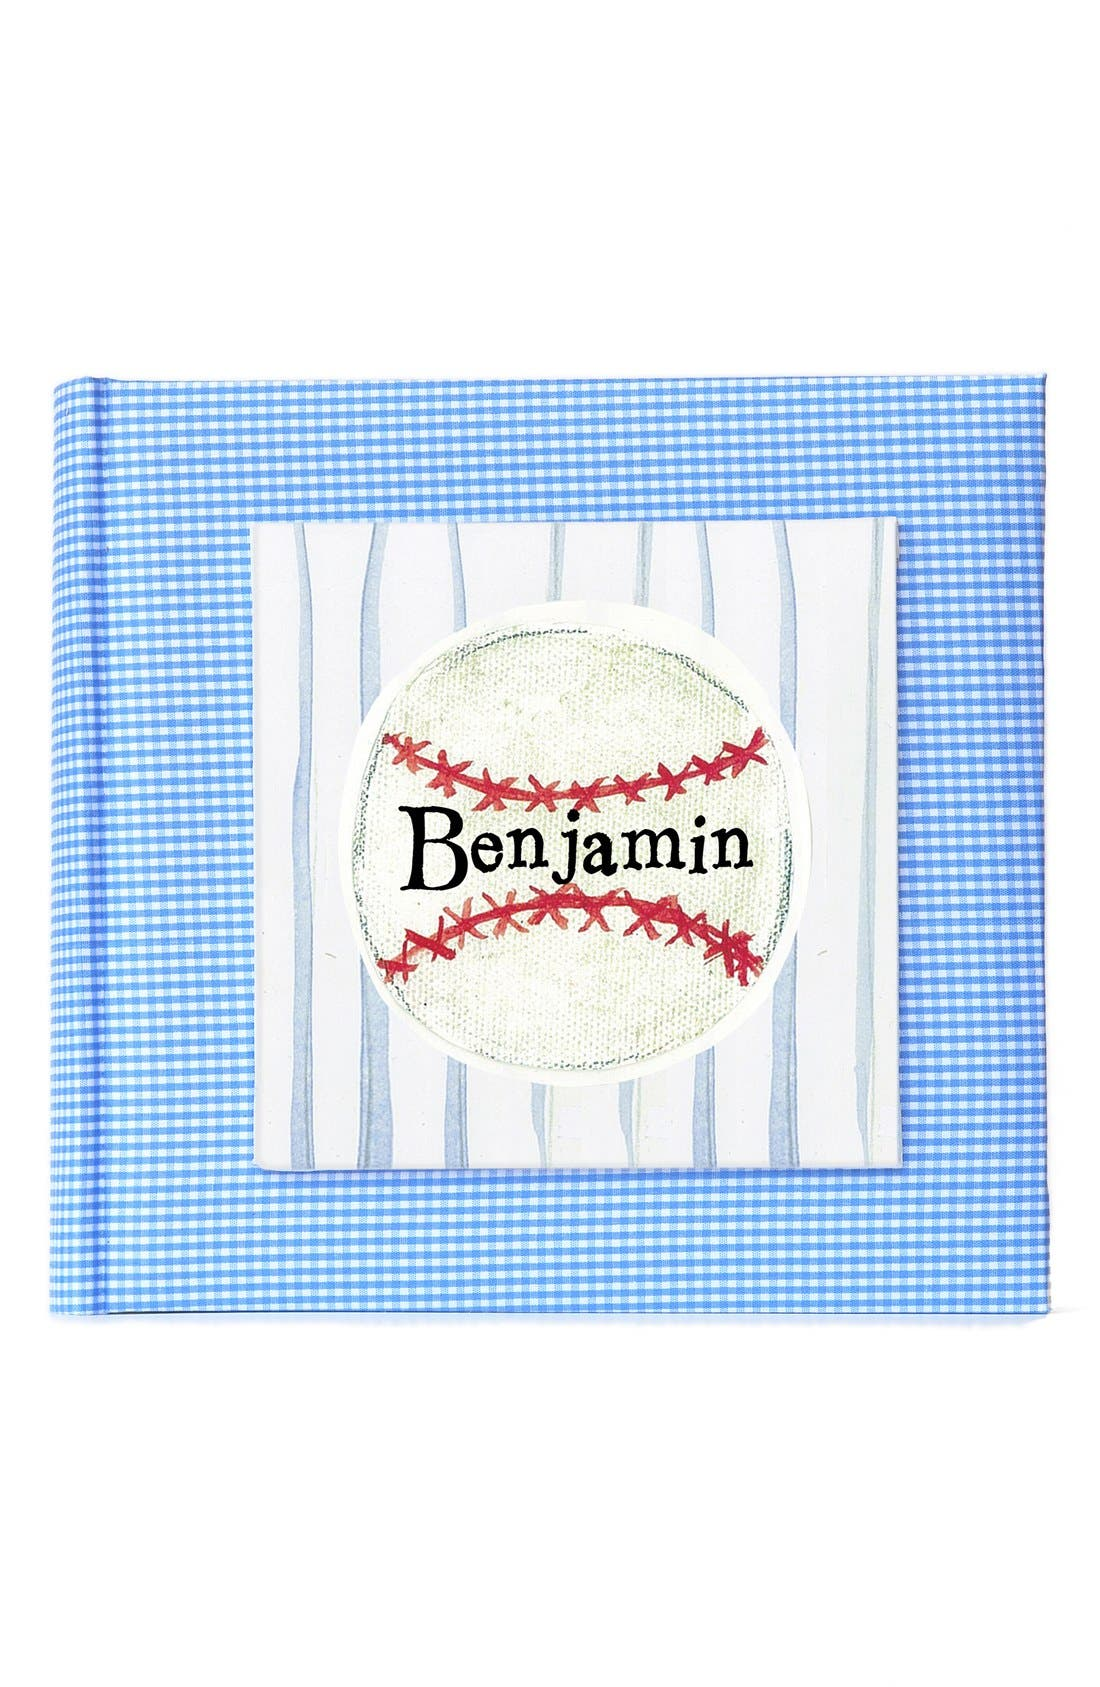 'Baseball' Personalized Photo Album,                         Main,                         color, Blue